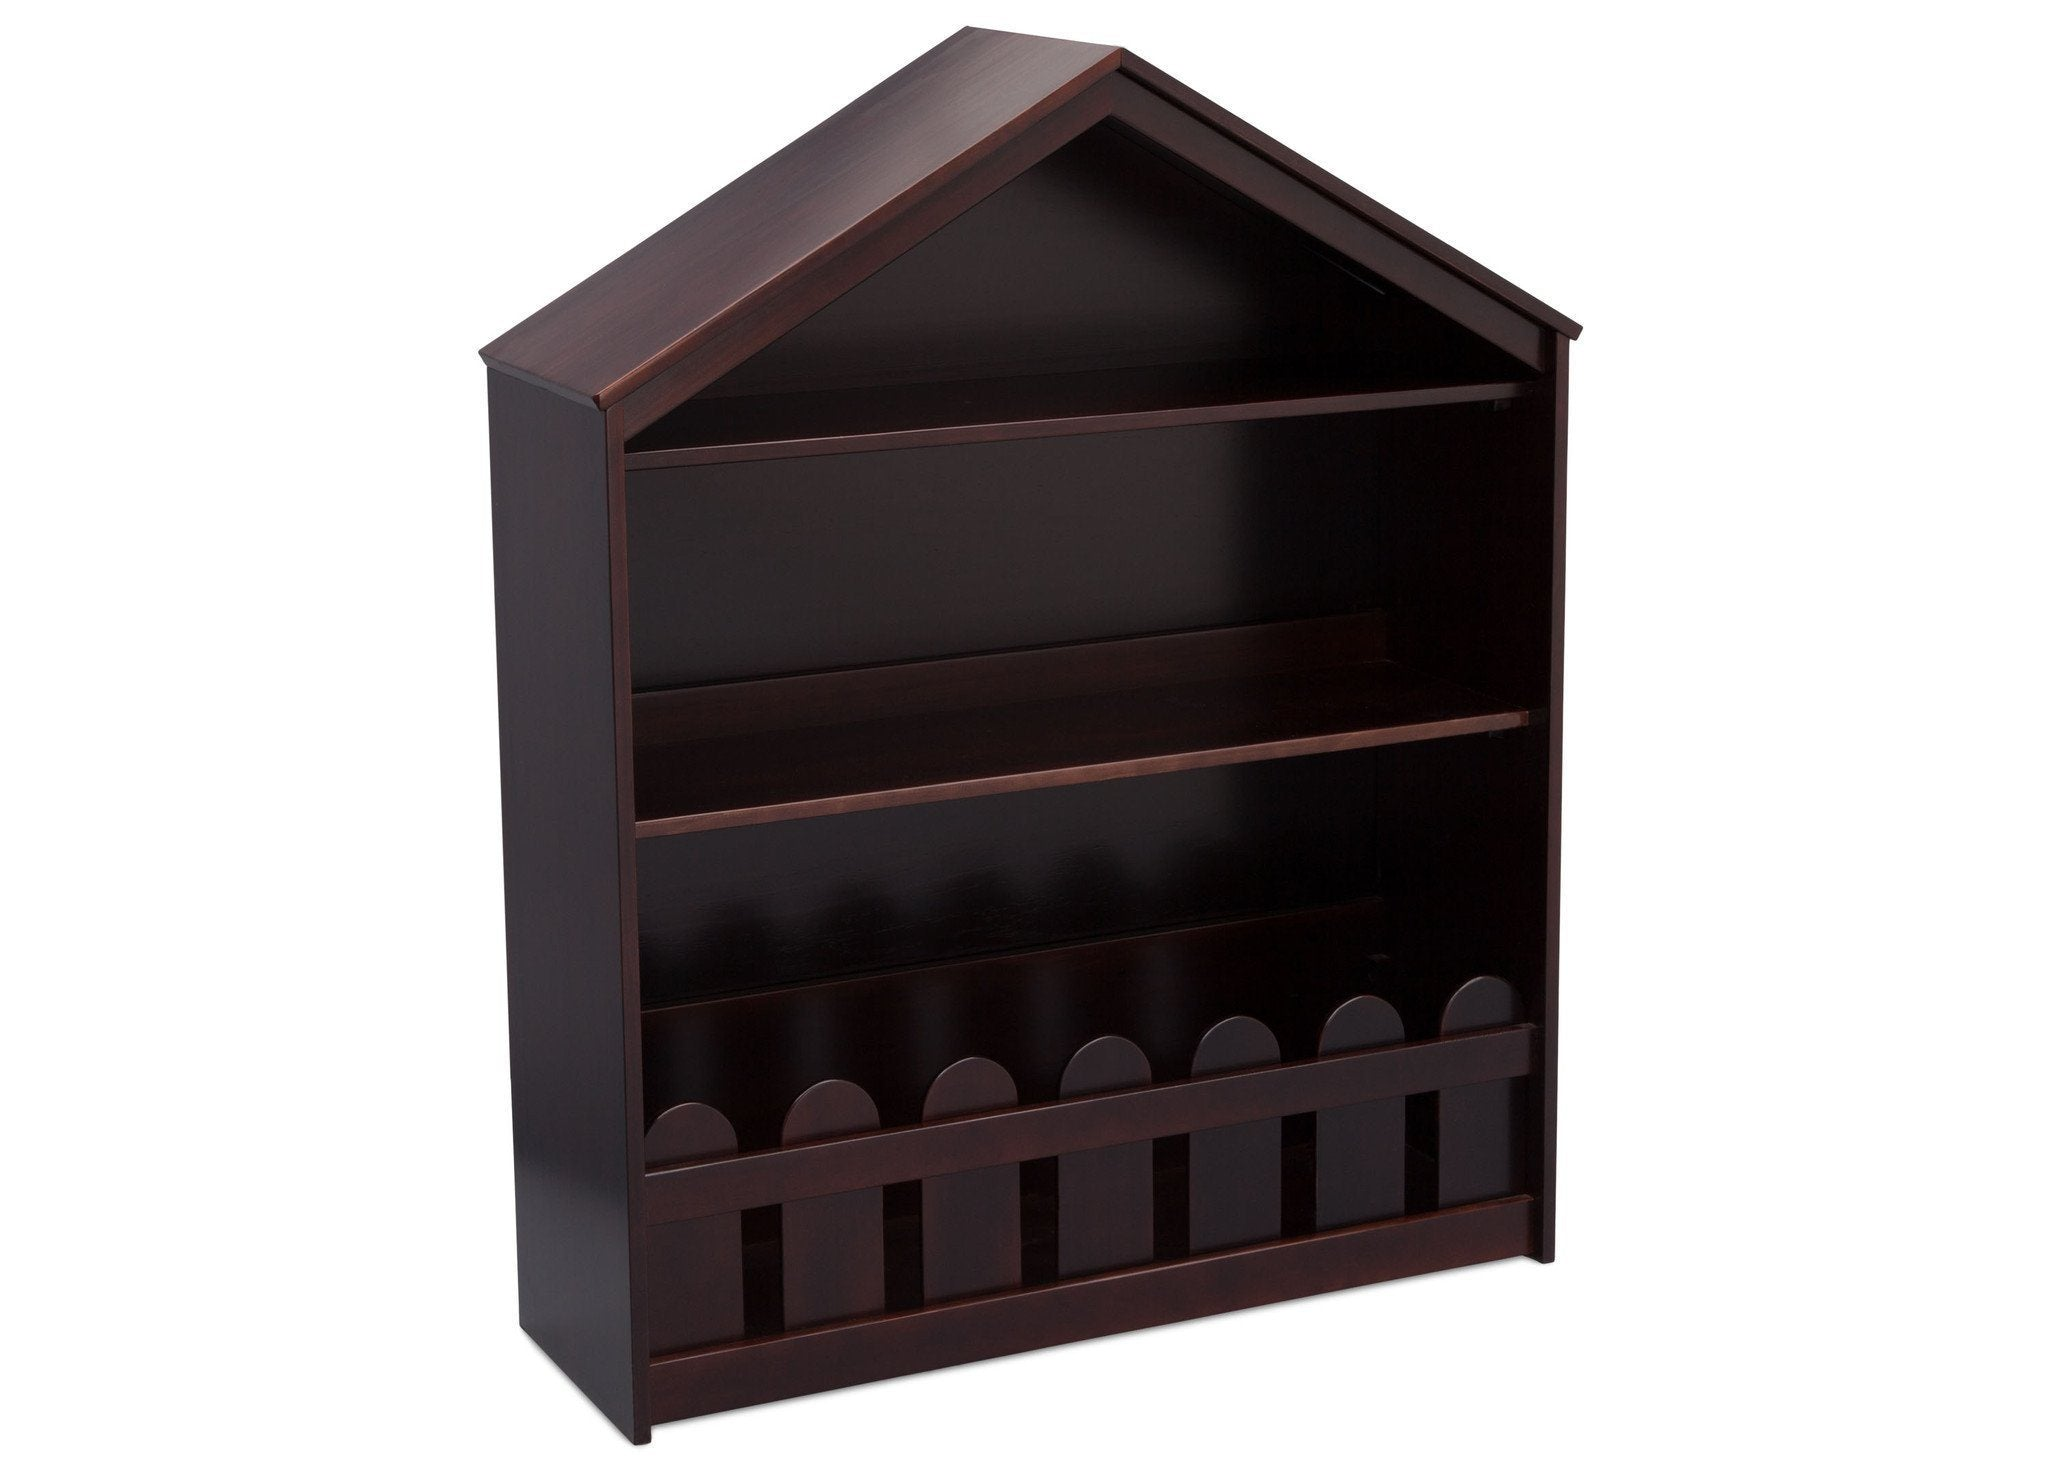 Serta Dark Chocolate (207) Happy Home Storage Bookcase c1c